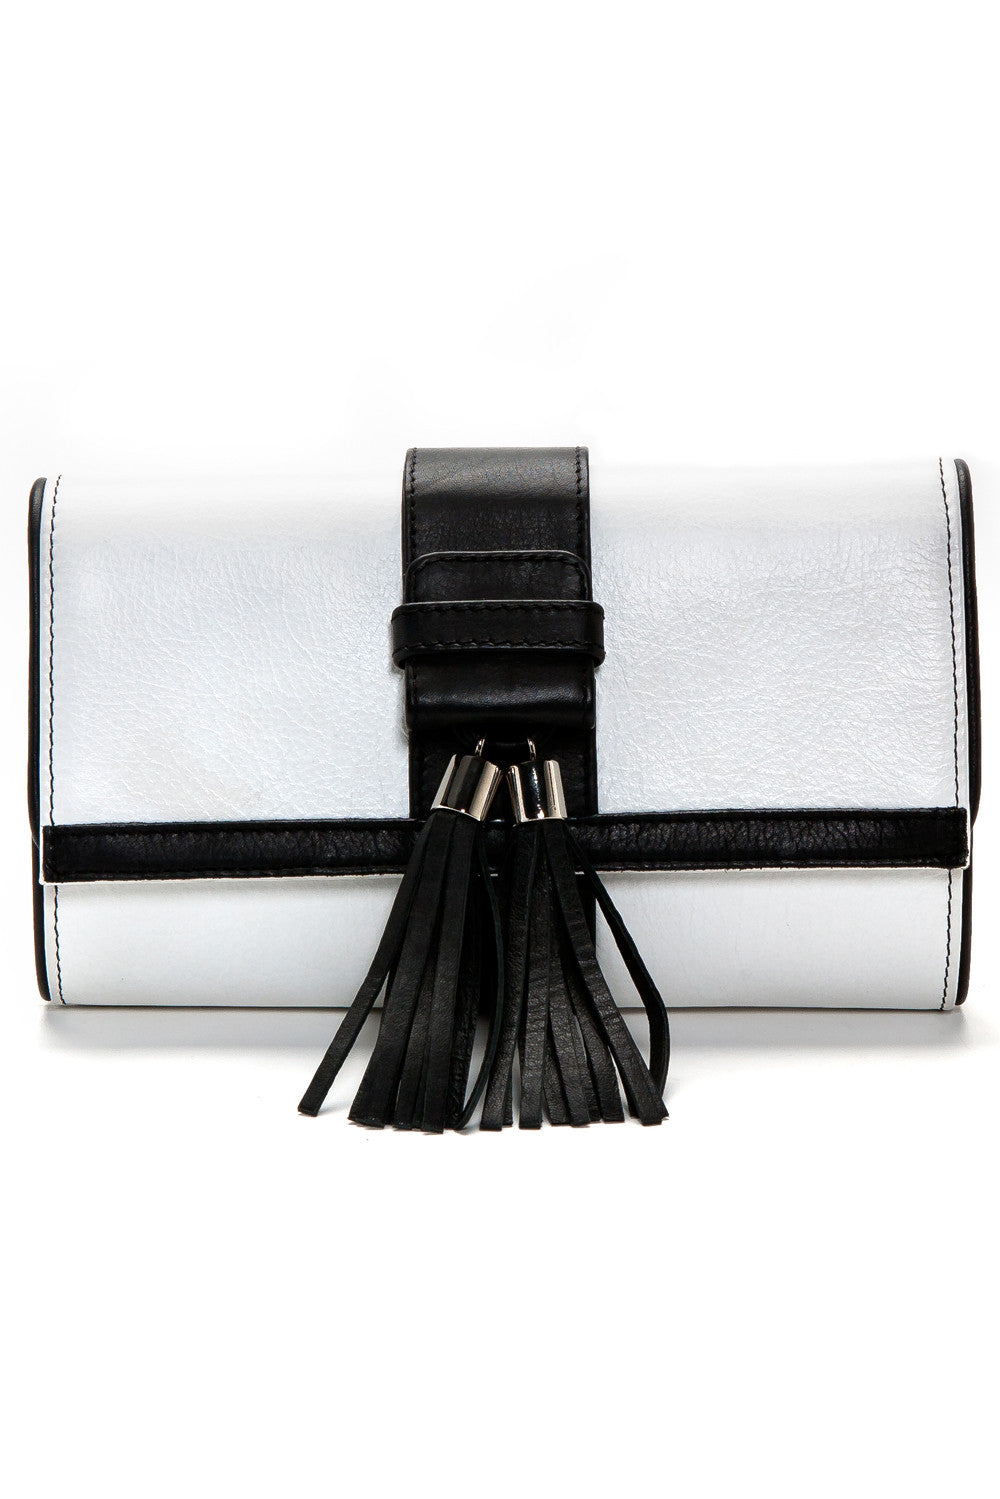 Black and White Tasseled 'Lauren' Small Shoulder Bag | Mel Boteri | Front View